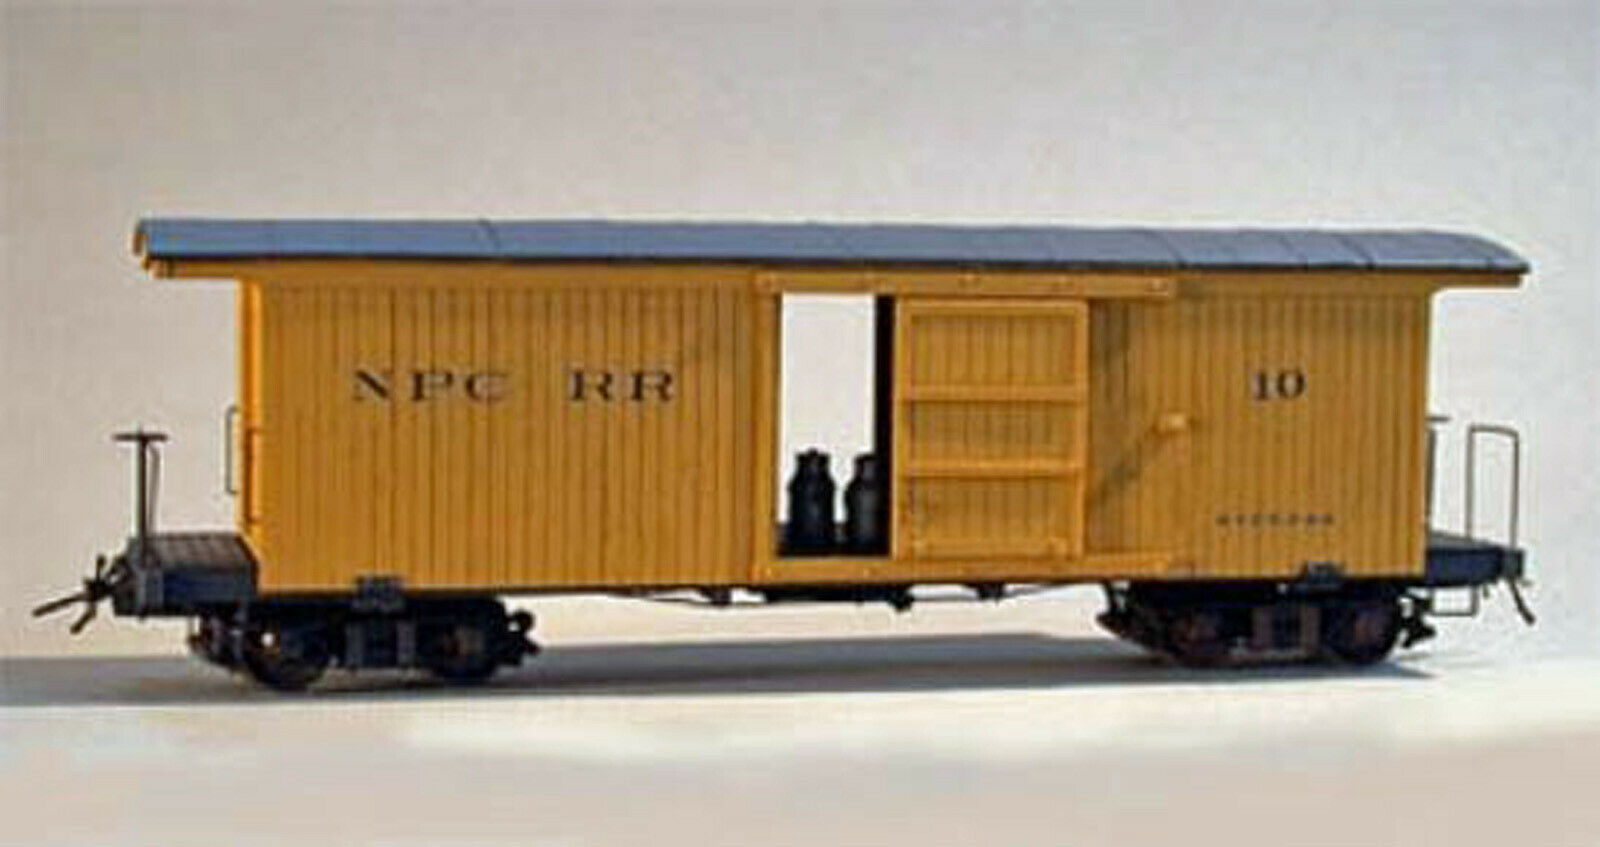 NPC BAGGAGE EXPRESS CAR Model Railroad On3 On30 Unpainted Plastic Kit DF111